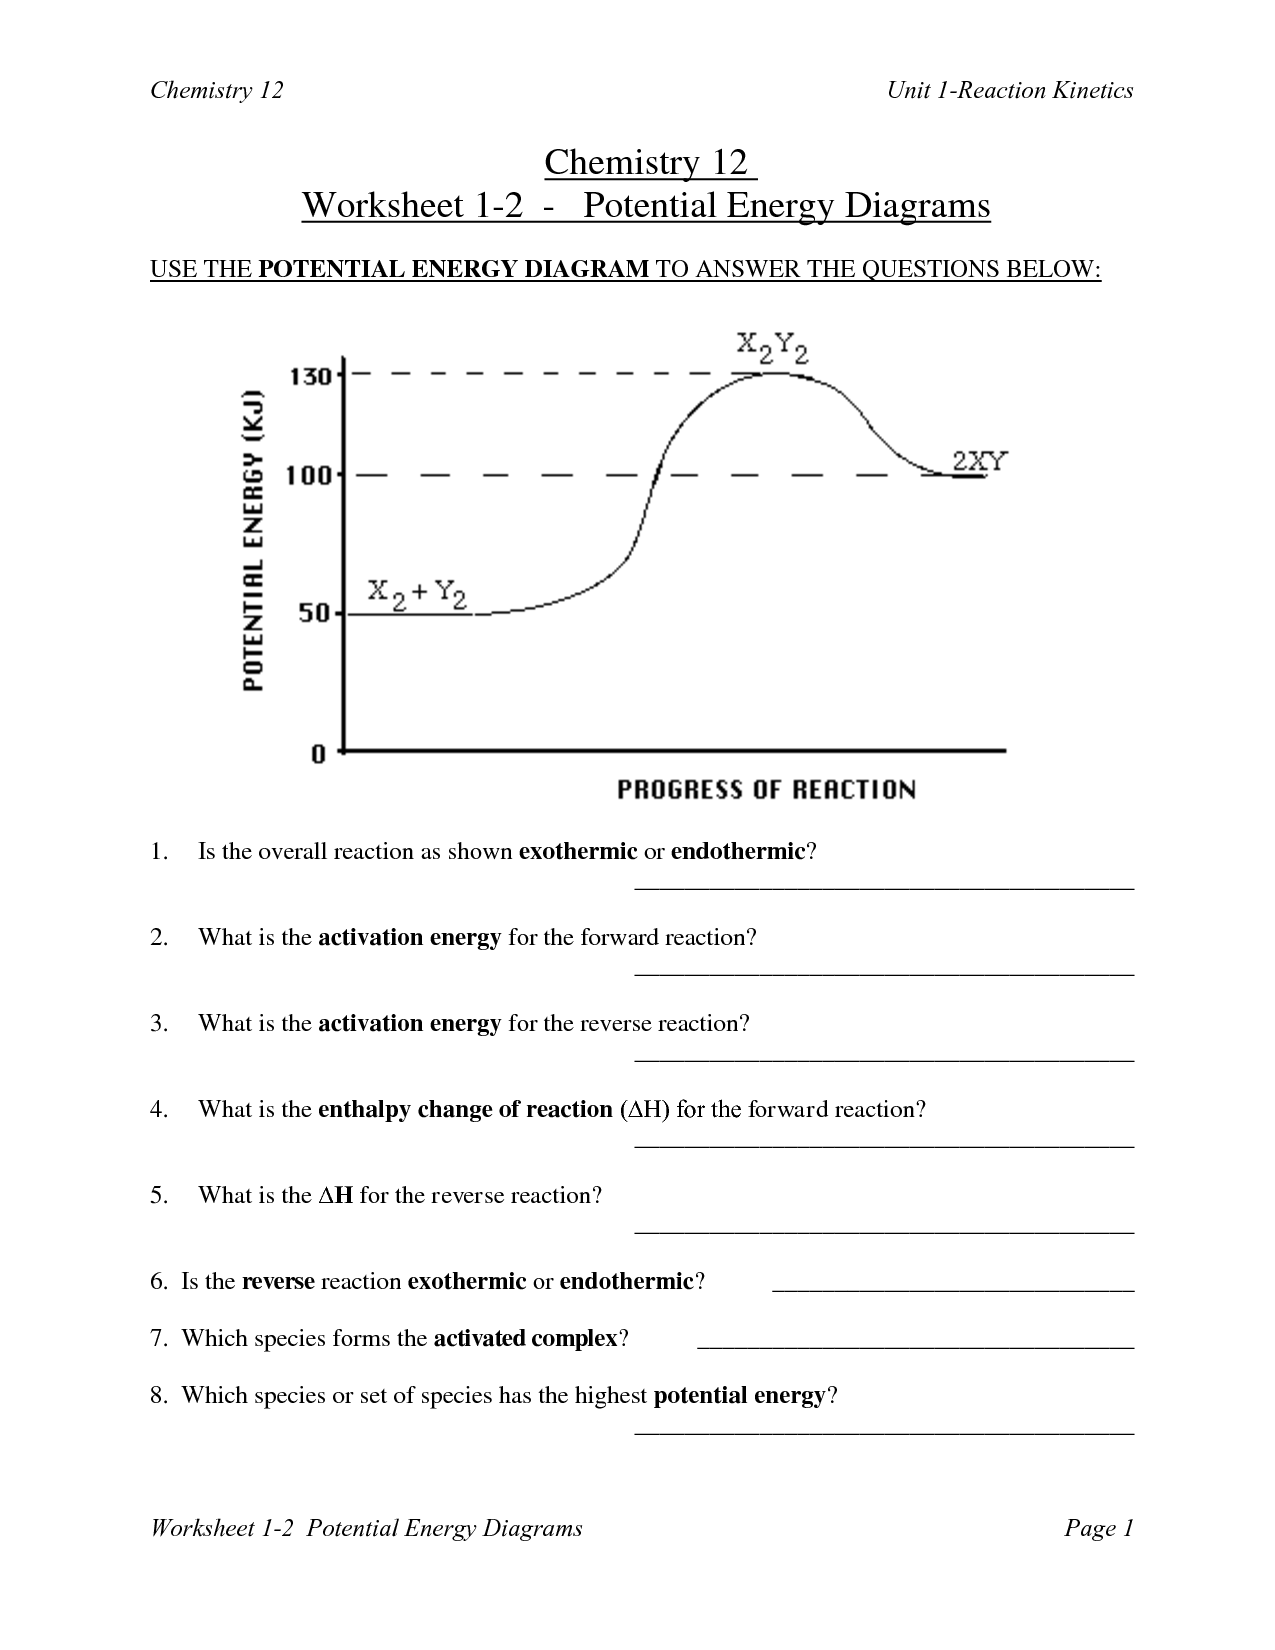 Endothermic And Exothermic Reactions Exothermic Reaction Reactions Potential Energy